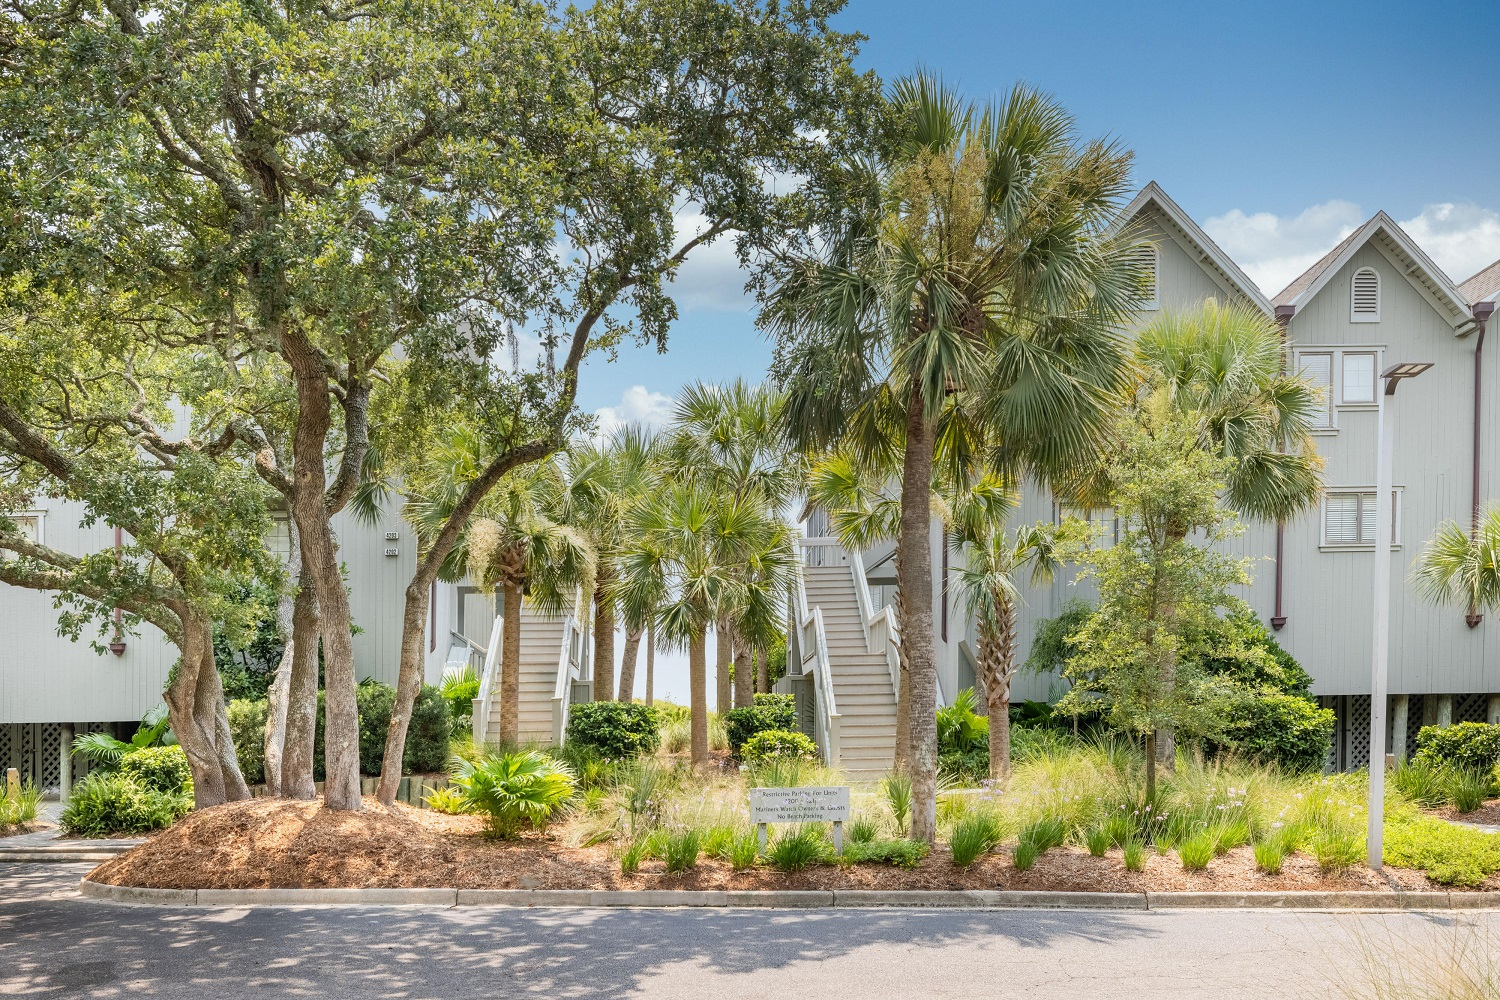 Vacation home landscaping in Souh Carolina